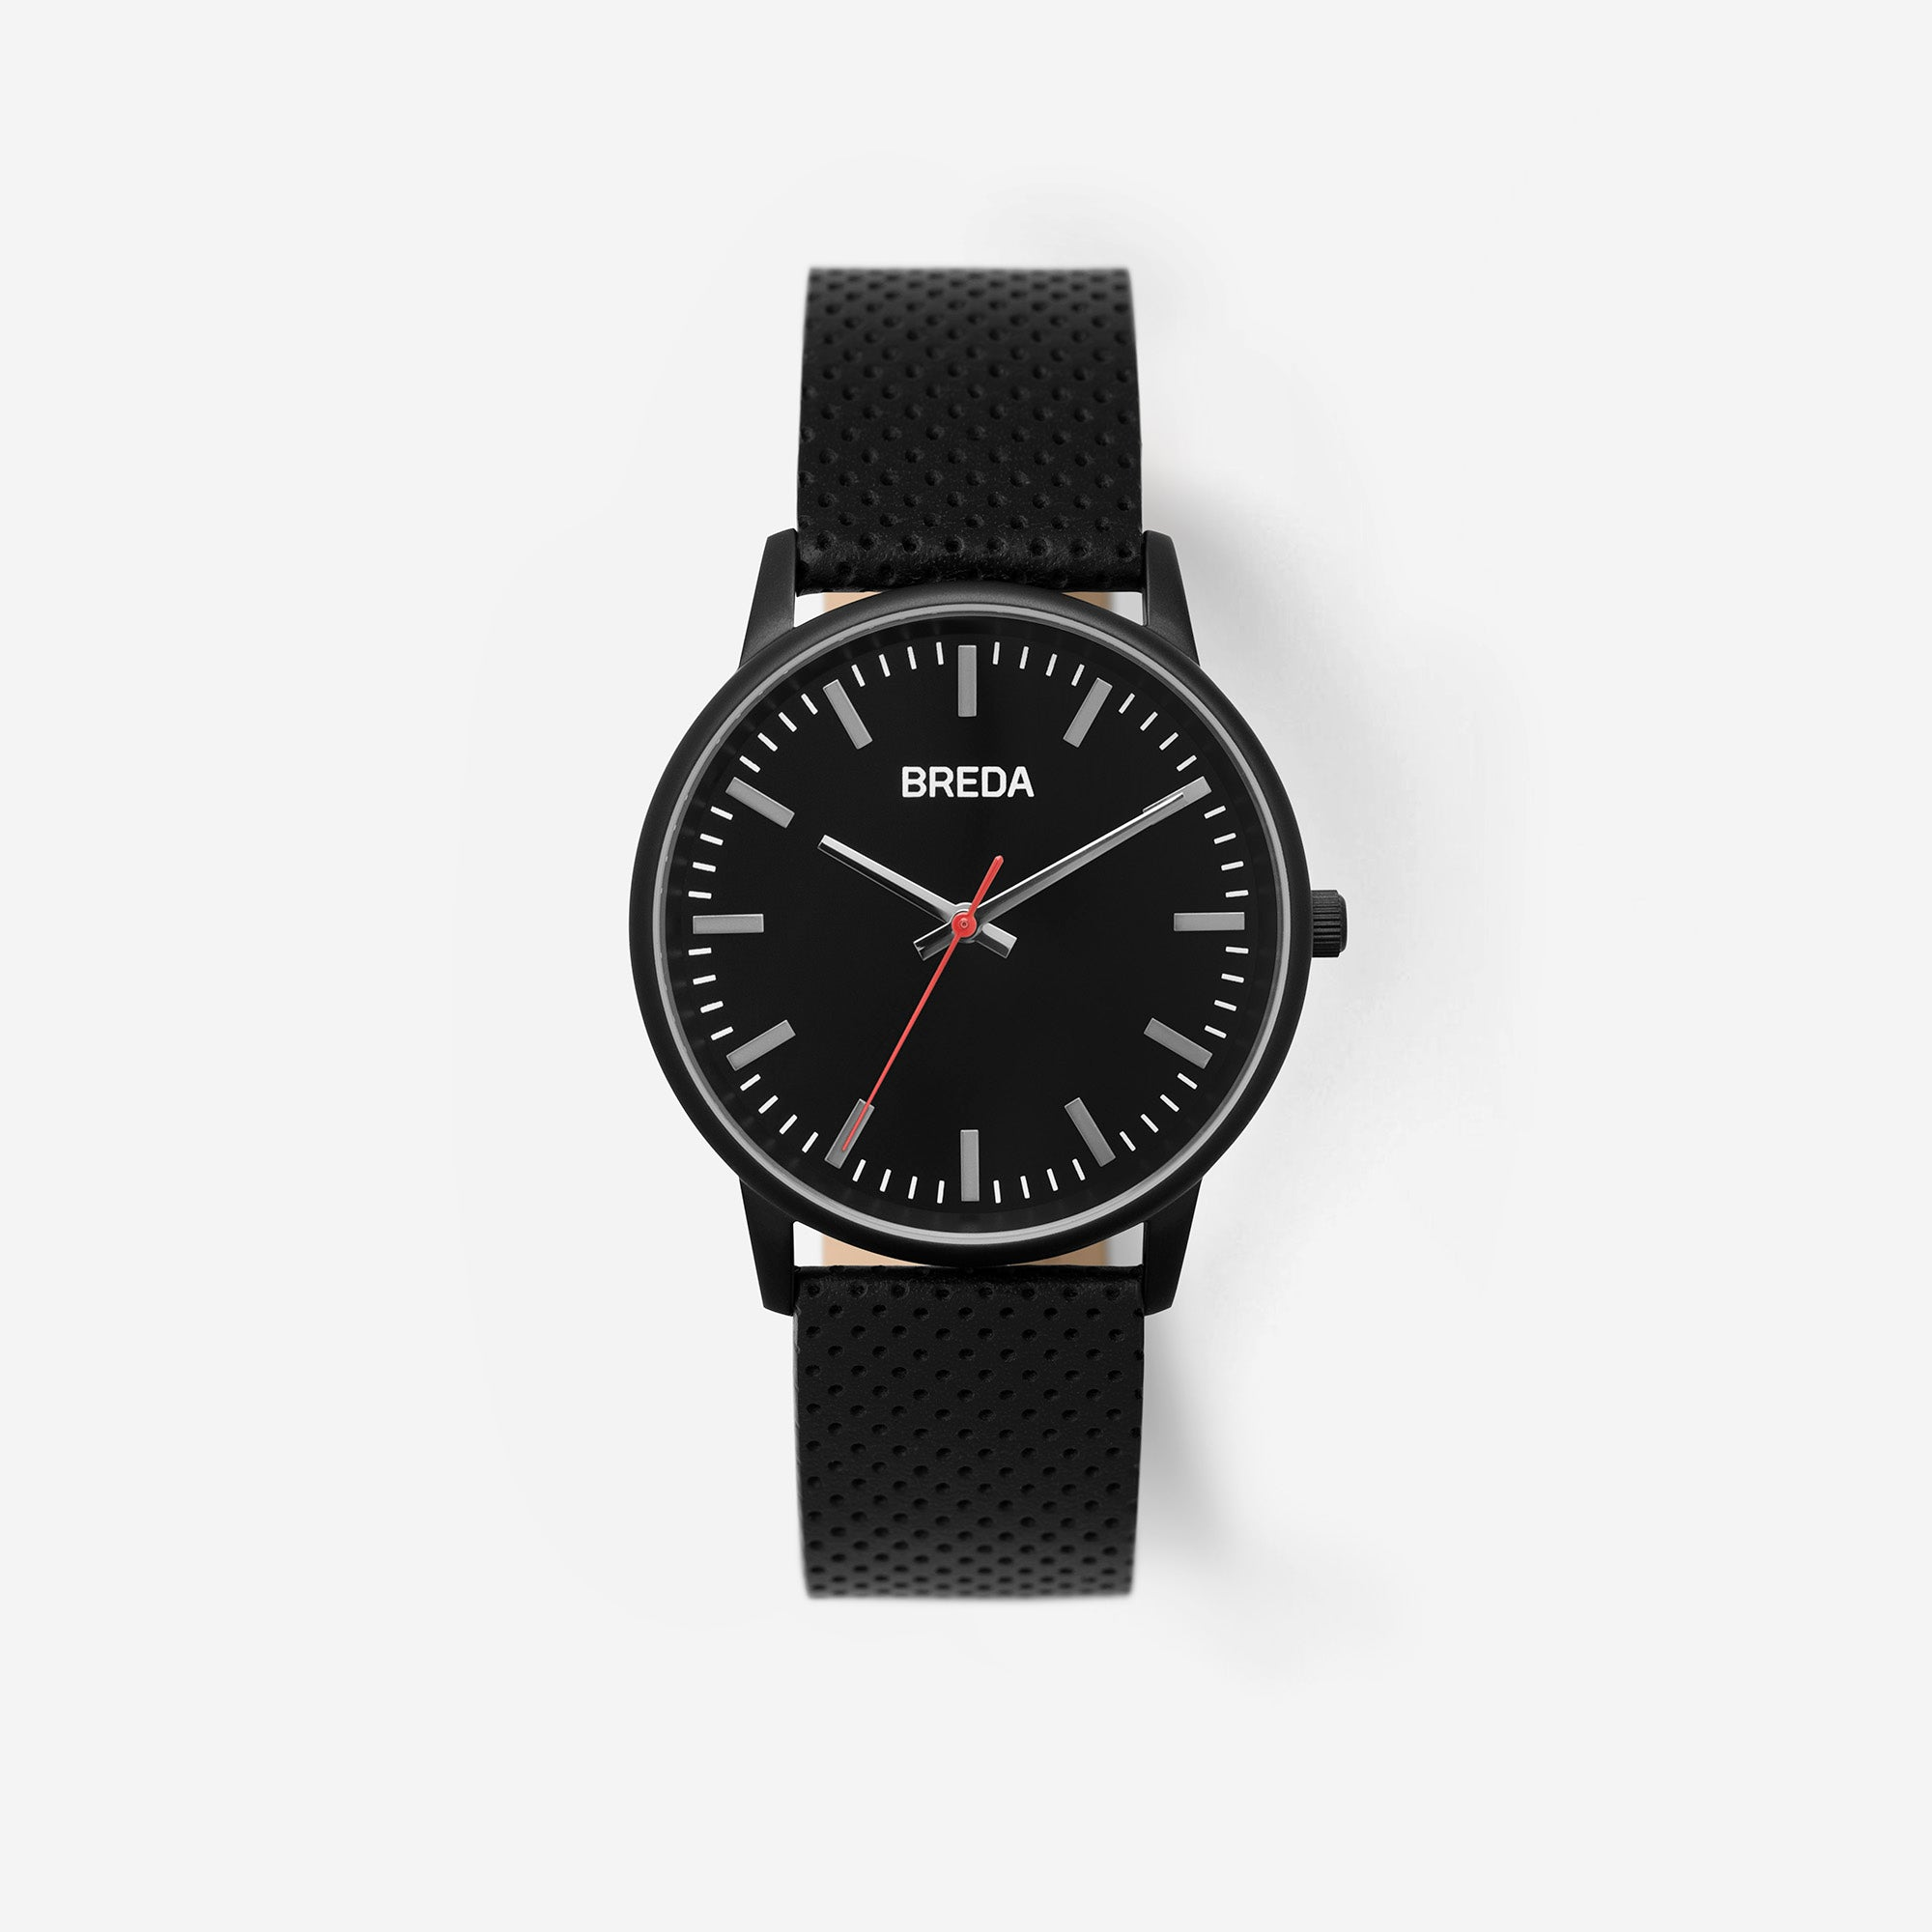 //cdn.shopify.com/s/files/1/0879/6650/products/breda-zapf-1725d-black-black-leather-watch-front_1024x1024.jpg?v=1542818414